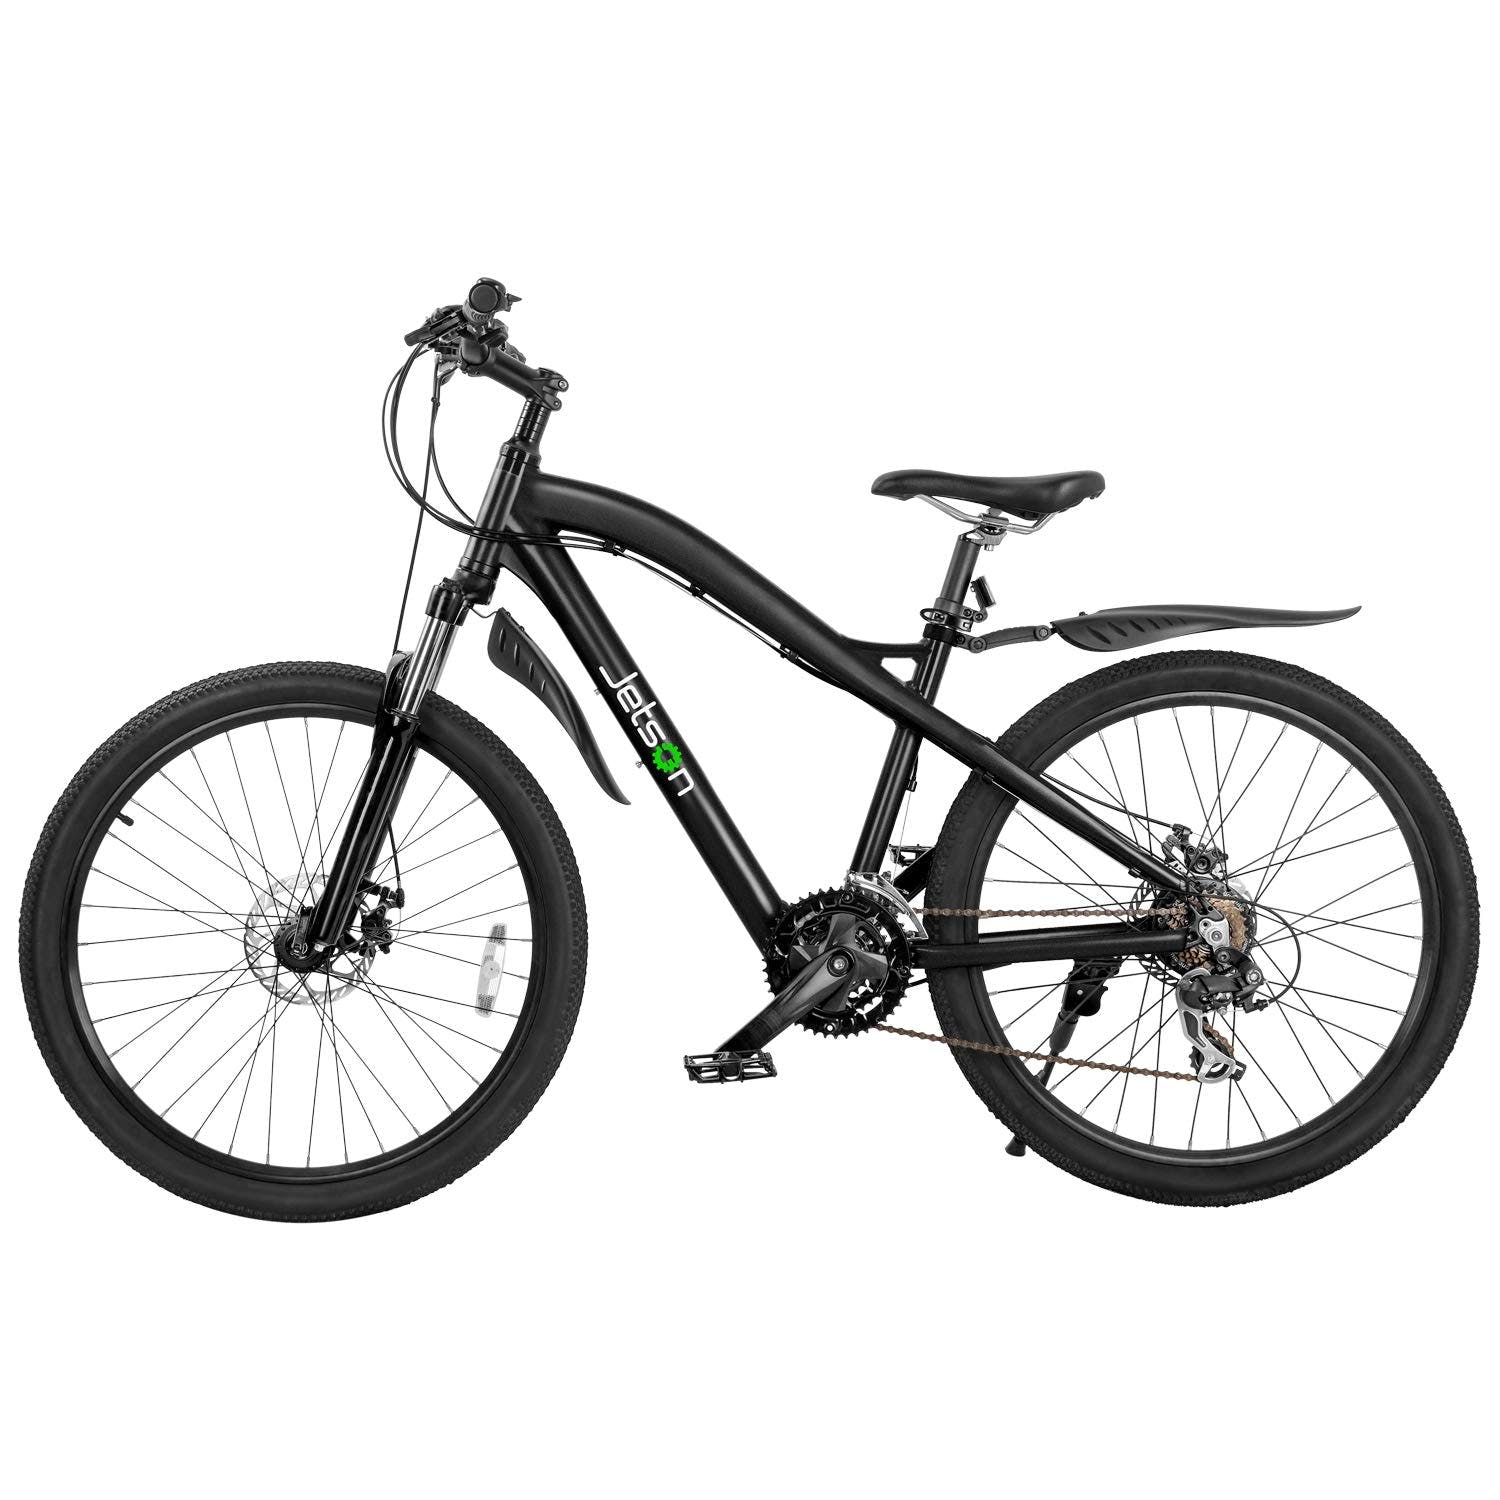 Jetson Electric Bike Runner Electric Bike With 7 Speed